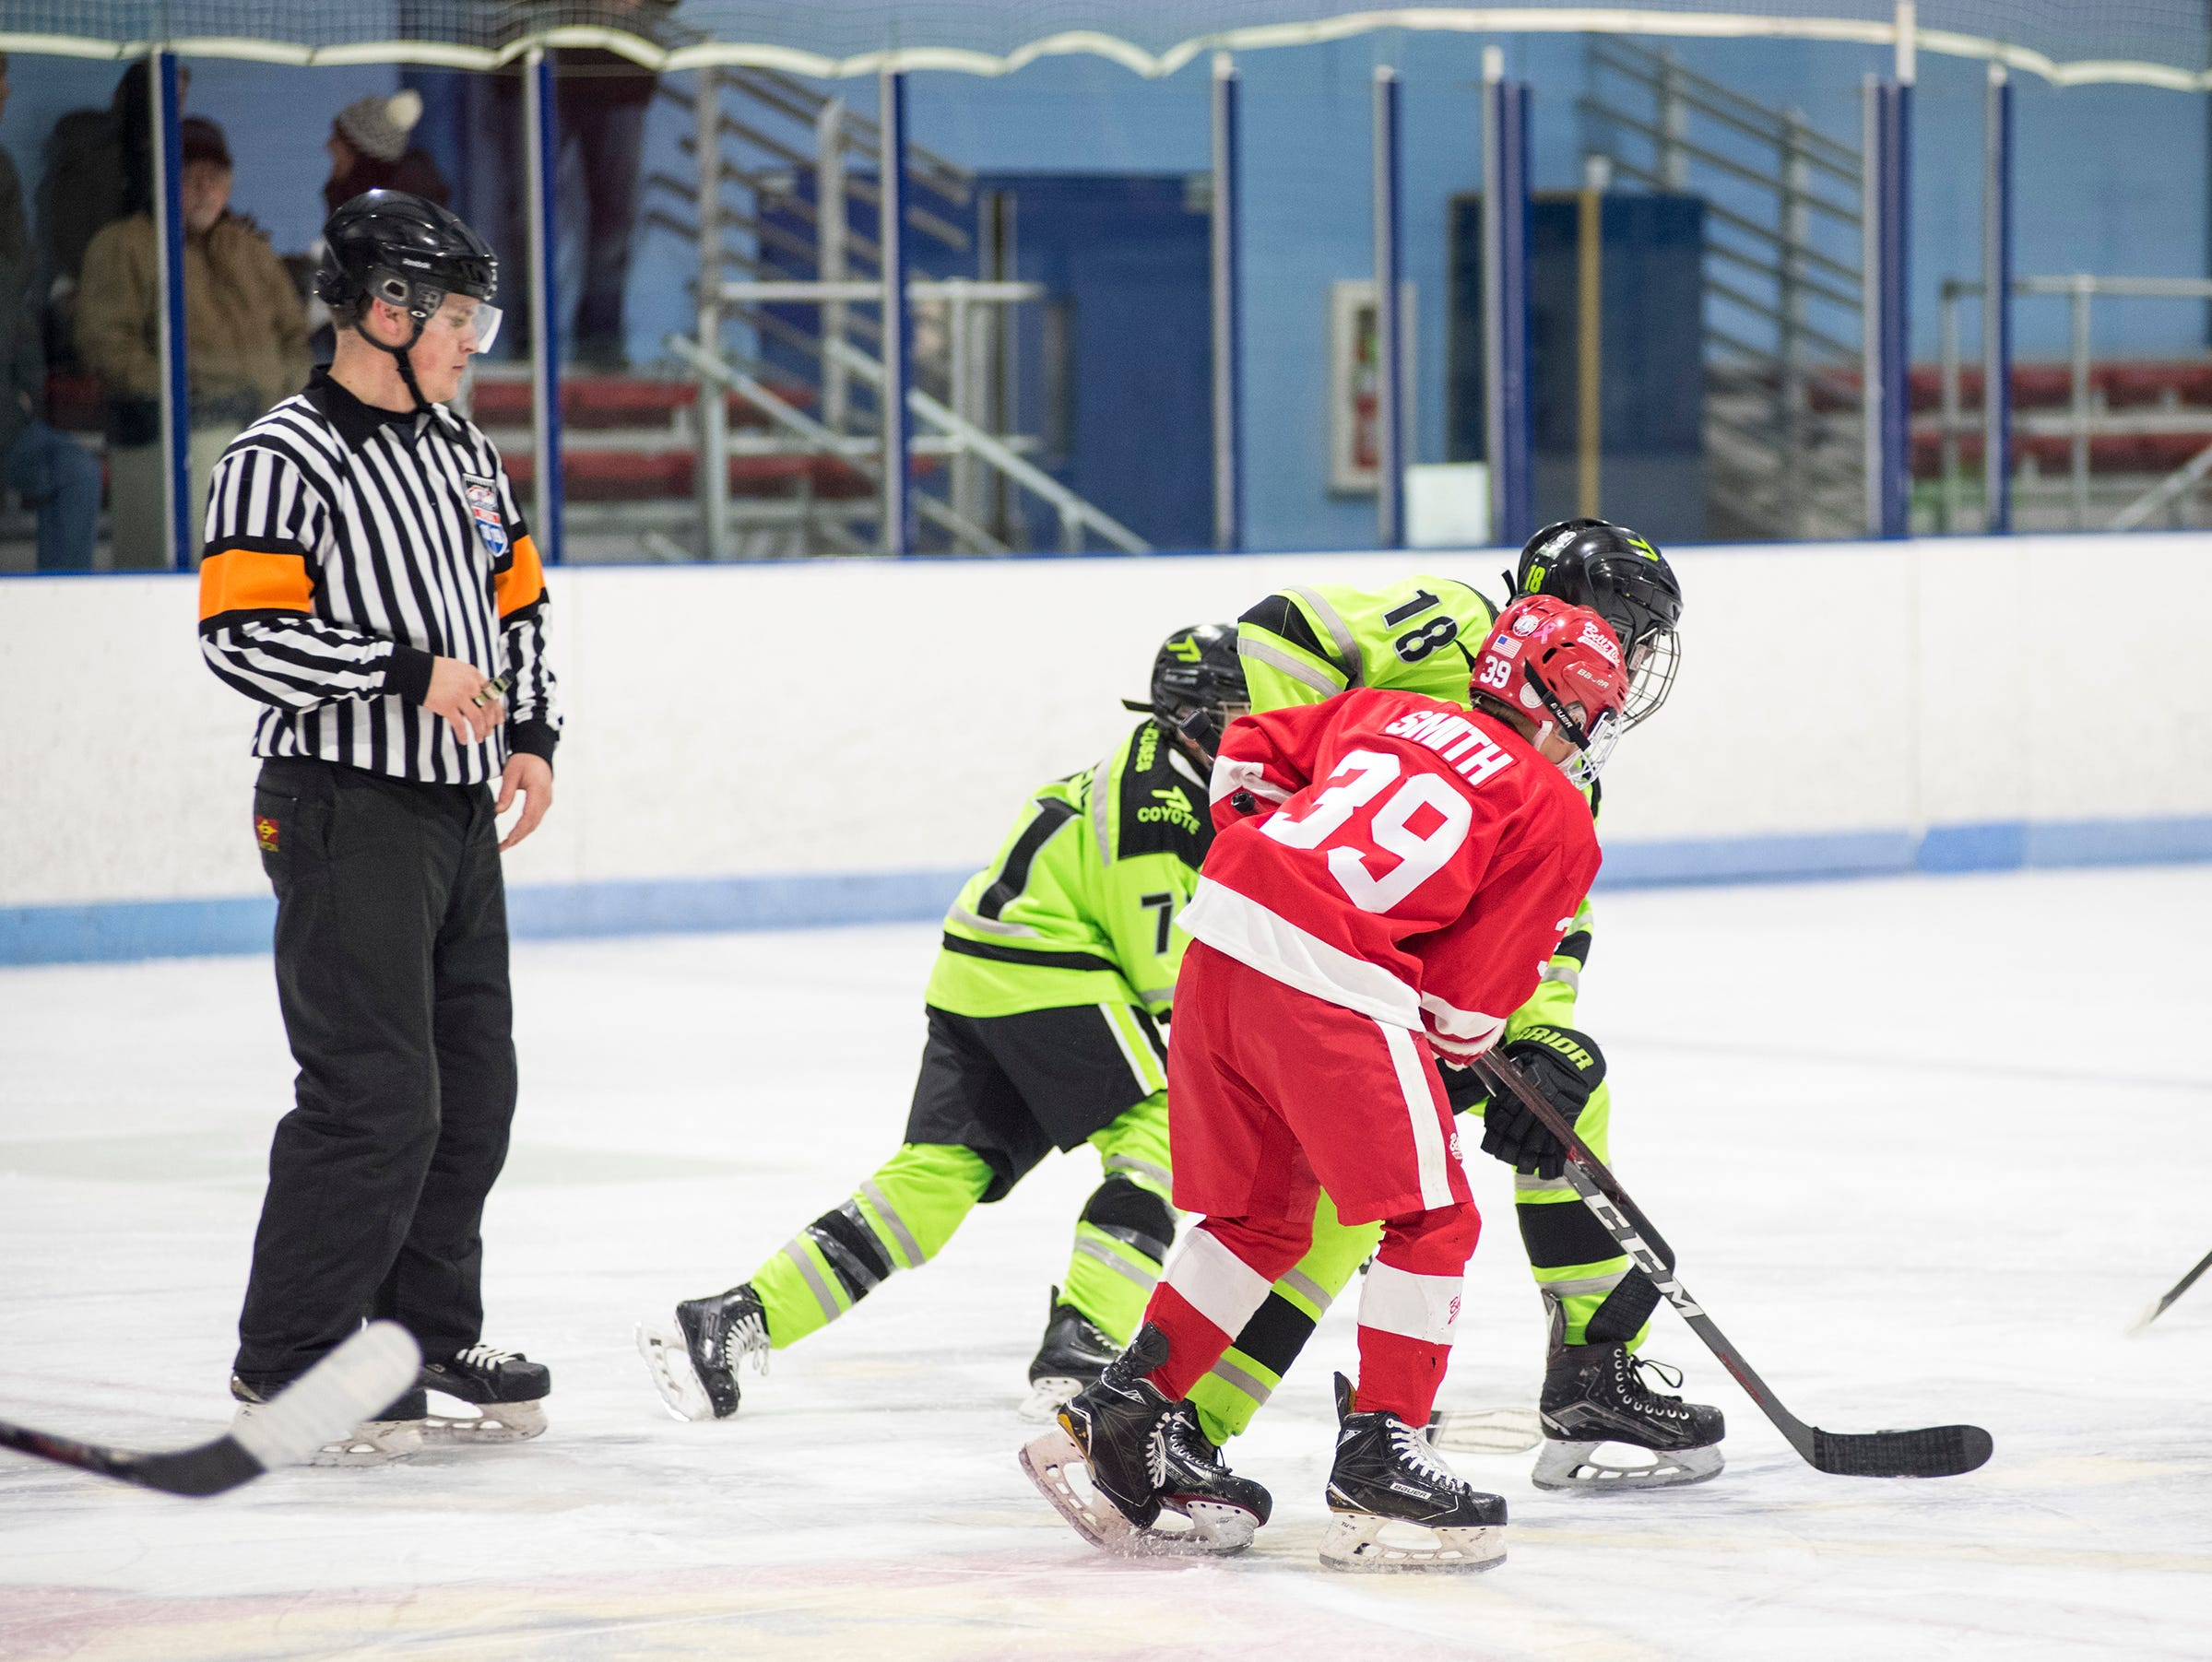 Detroit Belle Tire forward Brecken Smith (39) faces off against Chicago Mission forward John Greer during their PAAA-B Silver Stick Finals match Saturday, Jan. 5, 2019 at Glacier Pointe Ice Complex.